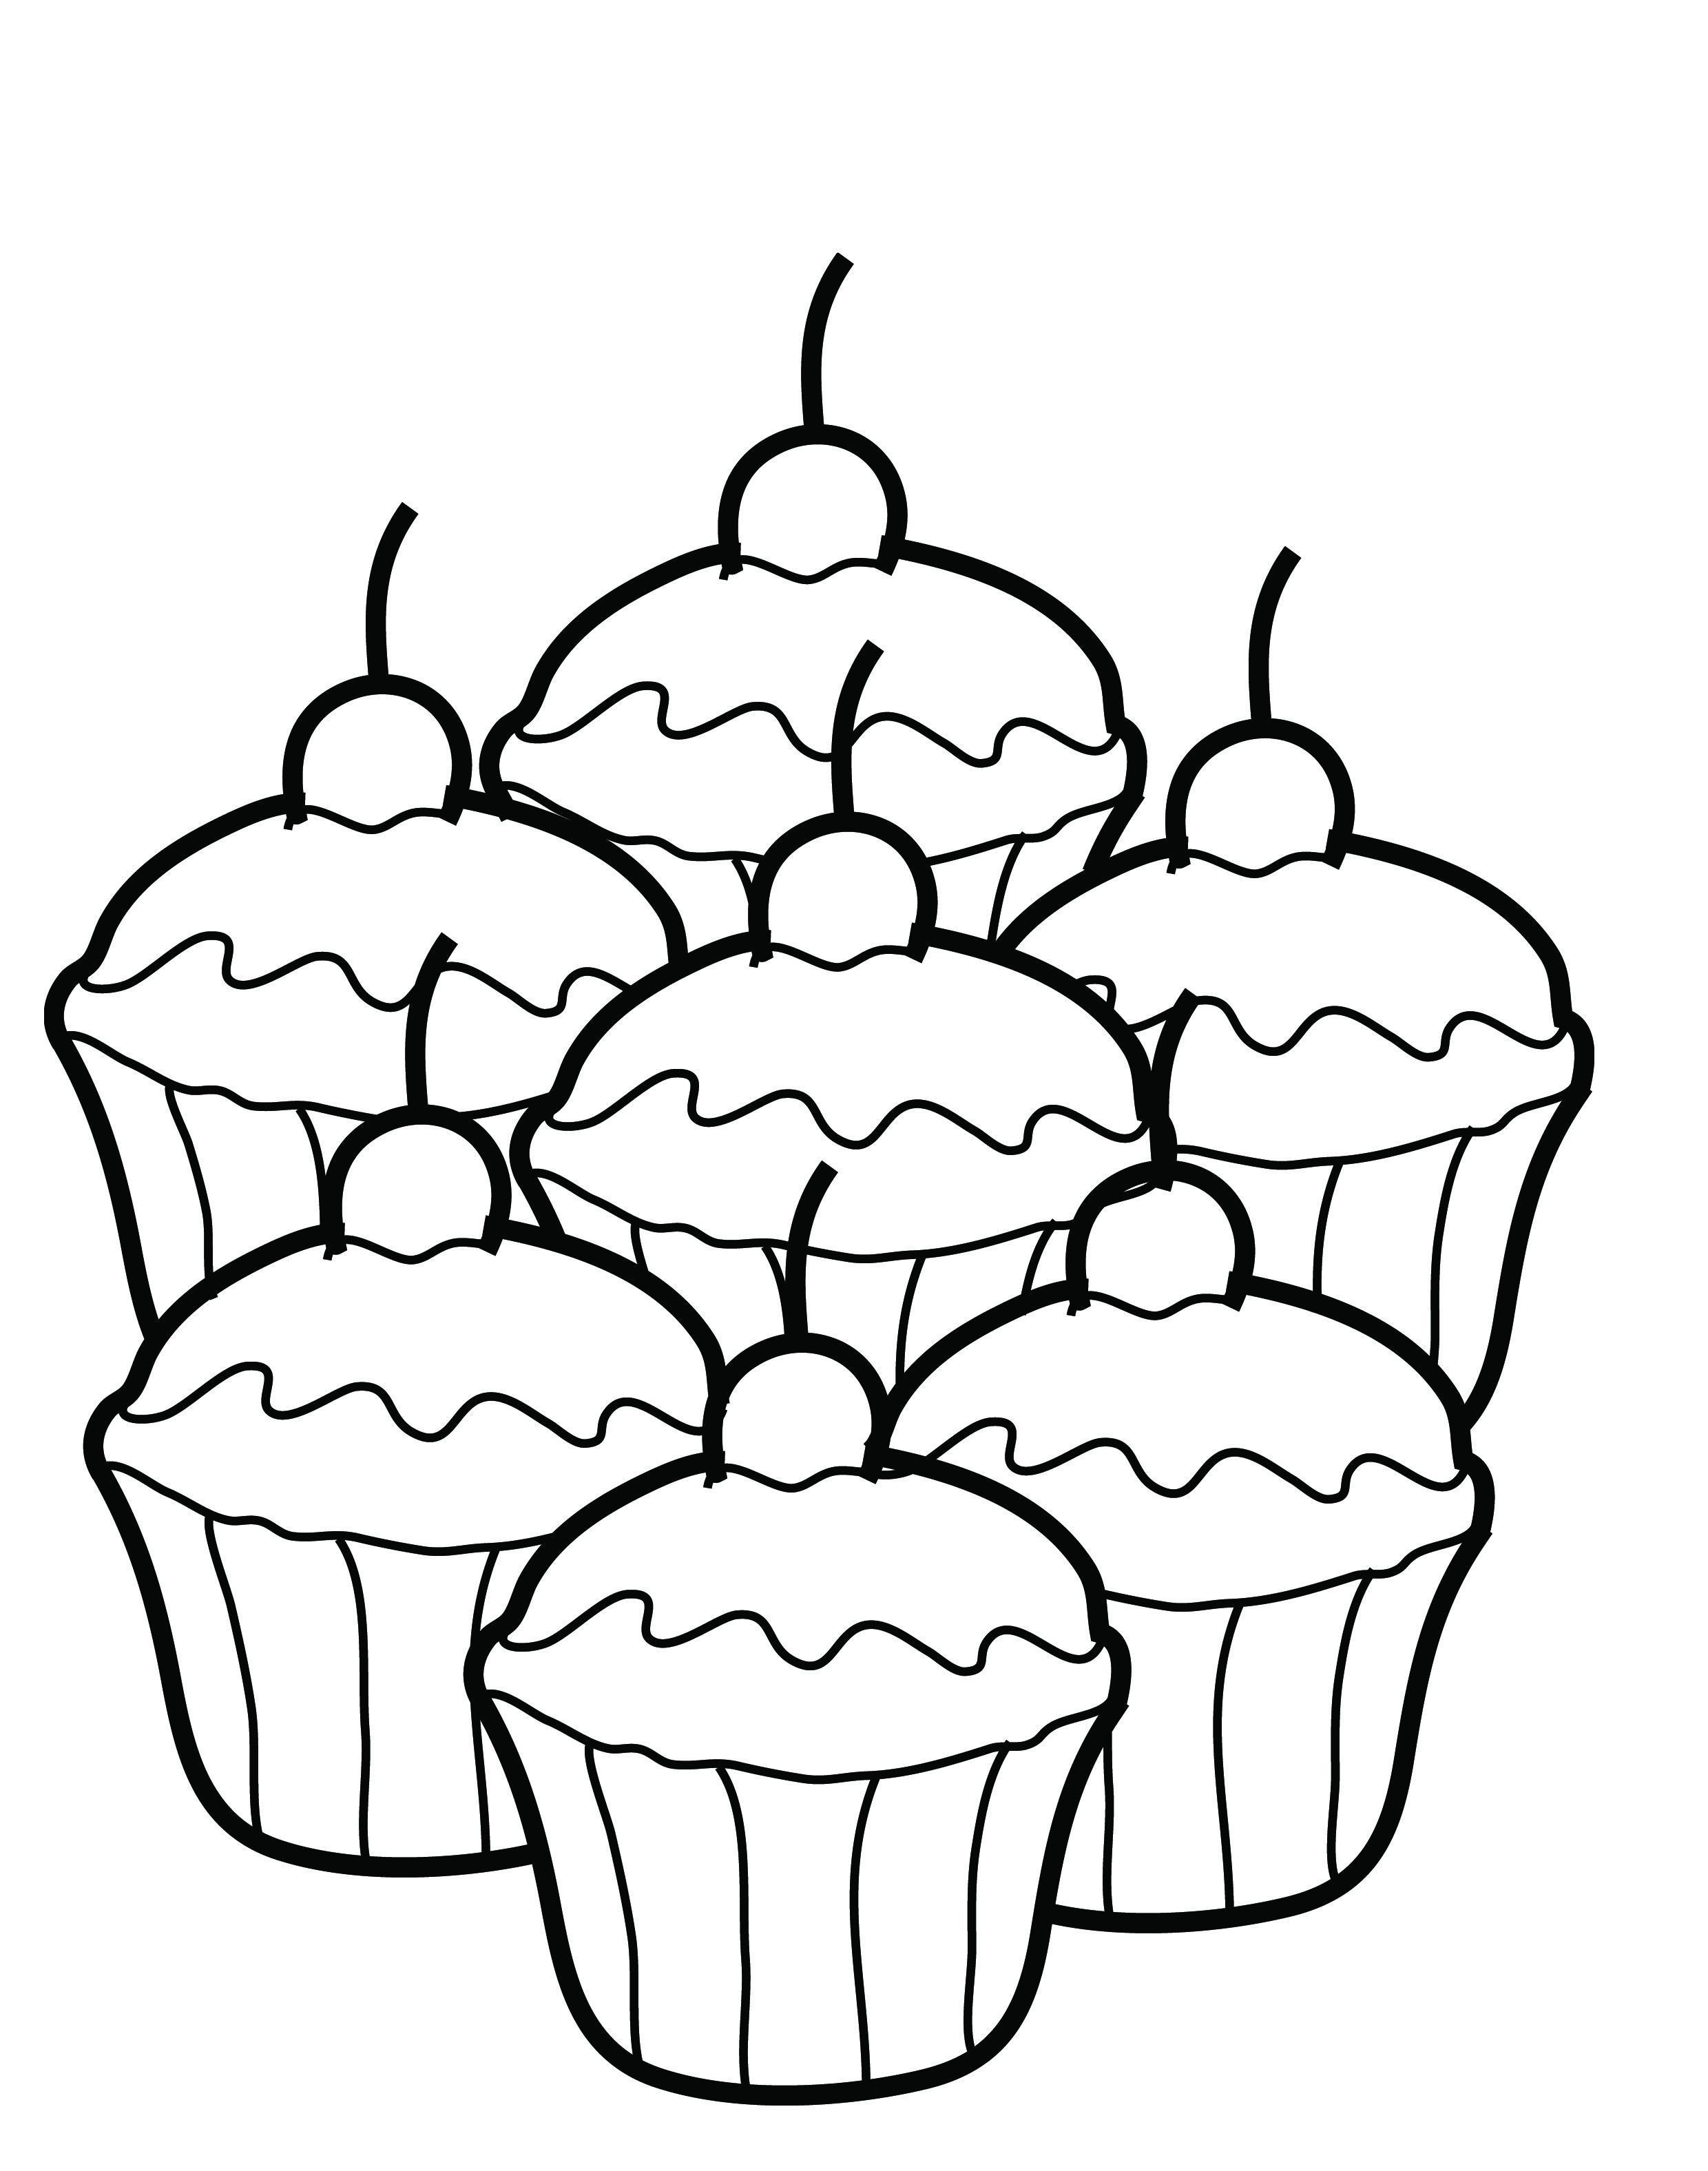 cupcake coloring pages for kids - Free Coloring Pages For Kids